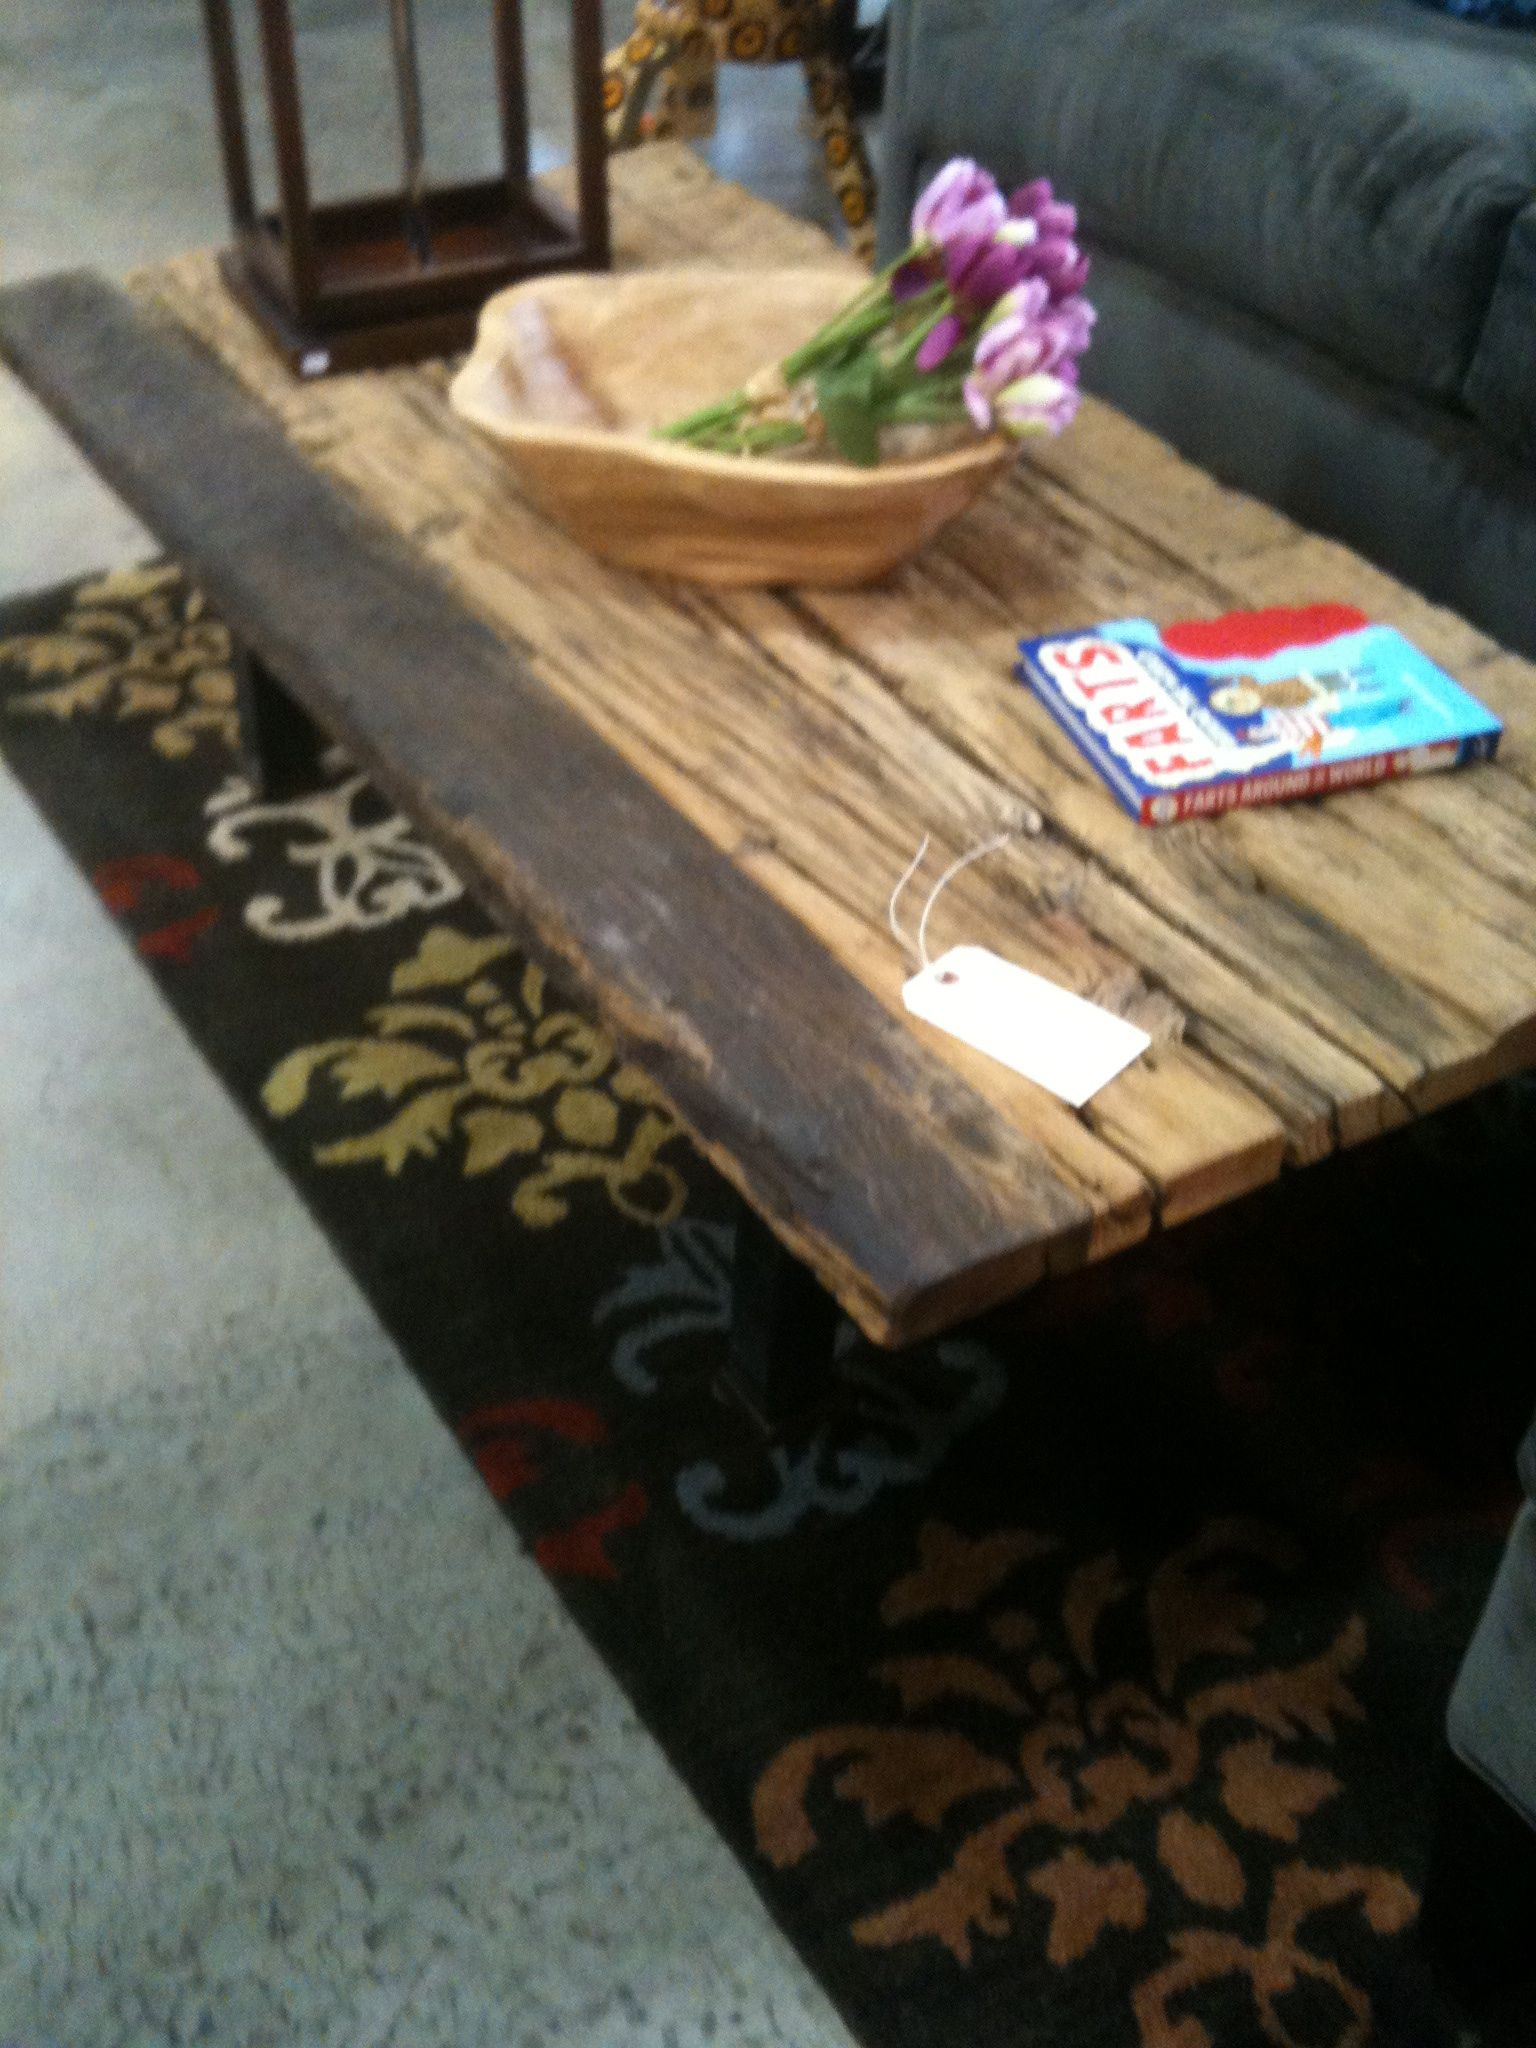 Rustic Driftwood Coffee Table I Like The Top But Would Change The Underneath Rustic Coffee Table Sets Coffee Table Rustic Coffee Tables [ 2048 x 1536 Pixel ]